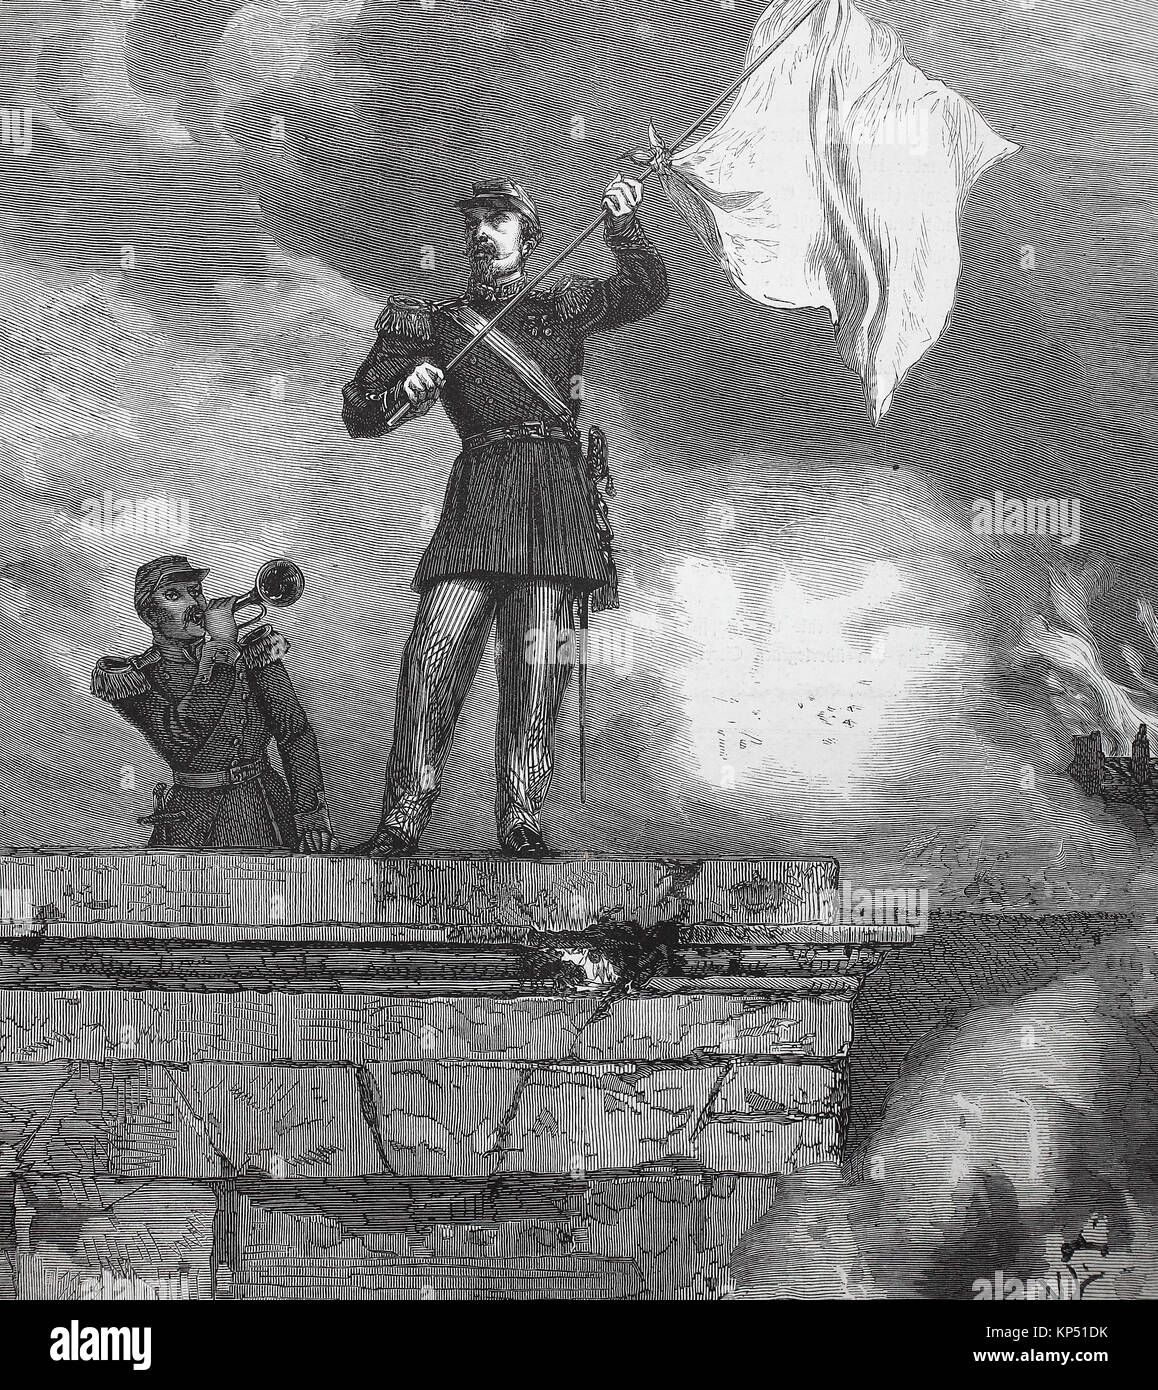 General Lauriston as a parliamentarian with white flag on the gates of Sedan, France, German-French campaign of - Stock Image